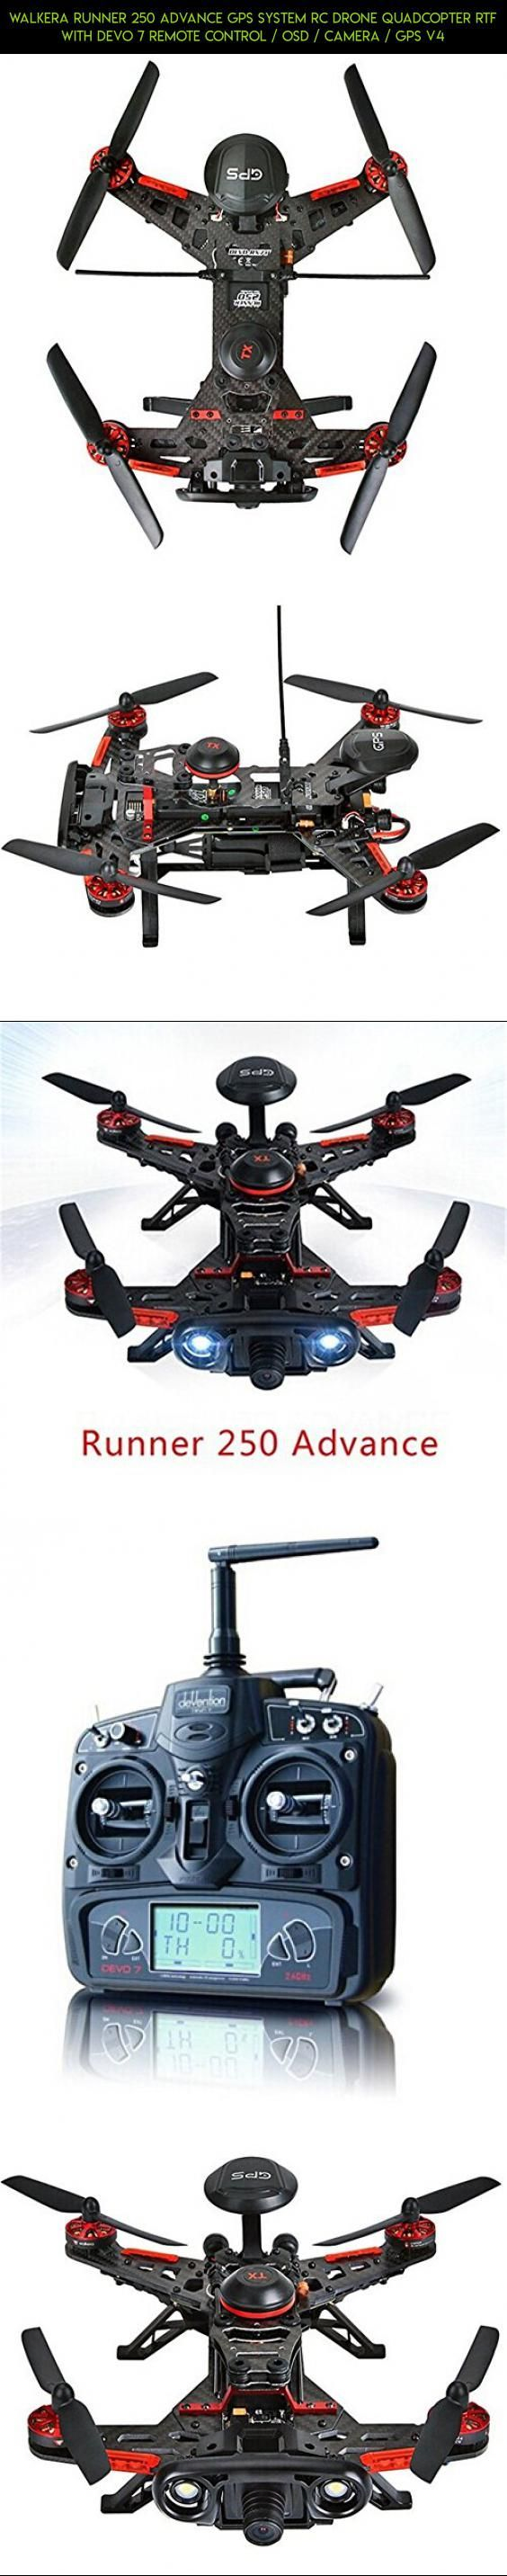 Walkera Runner 250 Advance GPS System RC Drone Quadcopter RTF with DEVO 7 Remote Control / OSD / Camera / GPS V4 #fpv #drone #technology #racing #kit #gadgets #drone #products #tech #plans #walkera #camera #parts #shopping